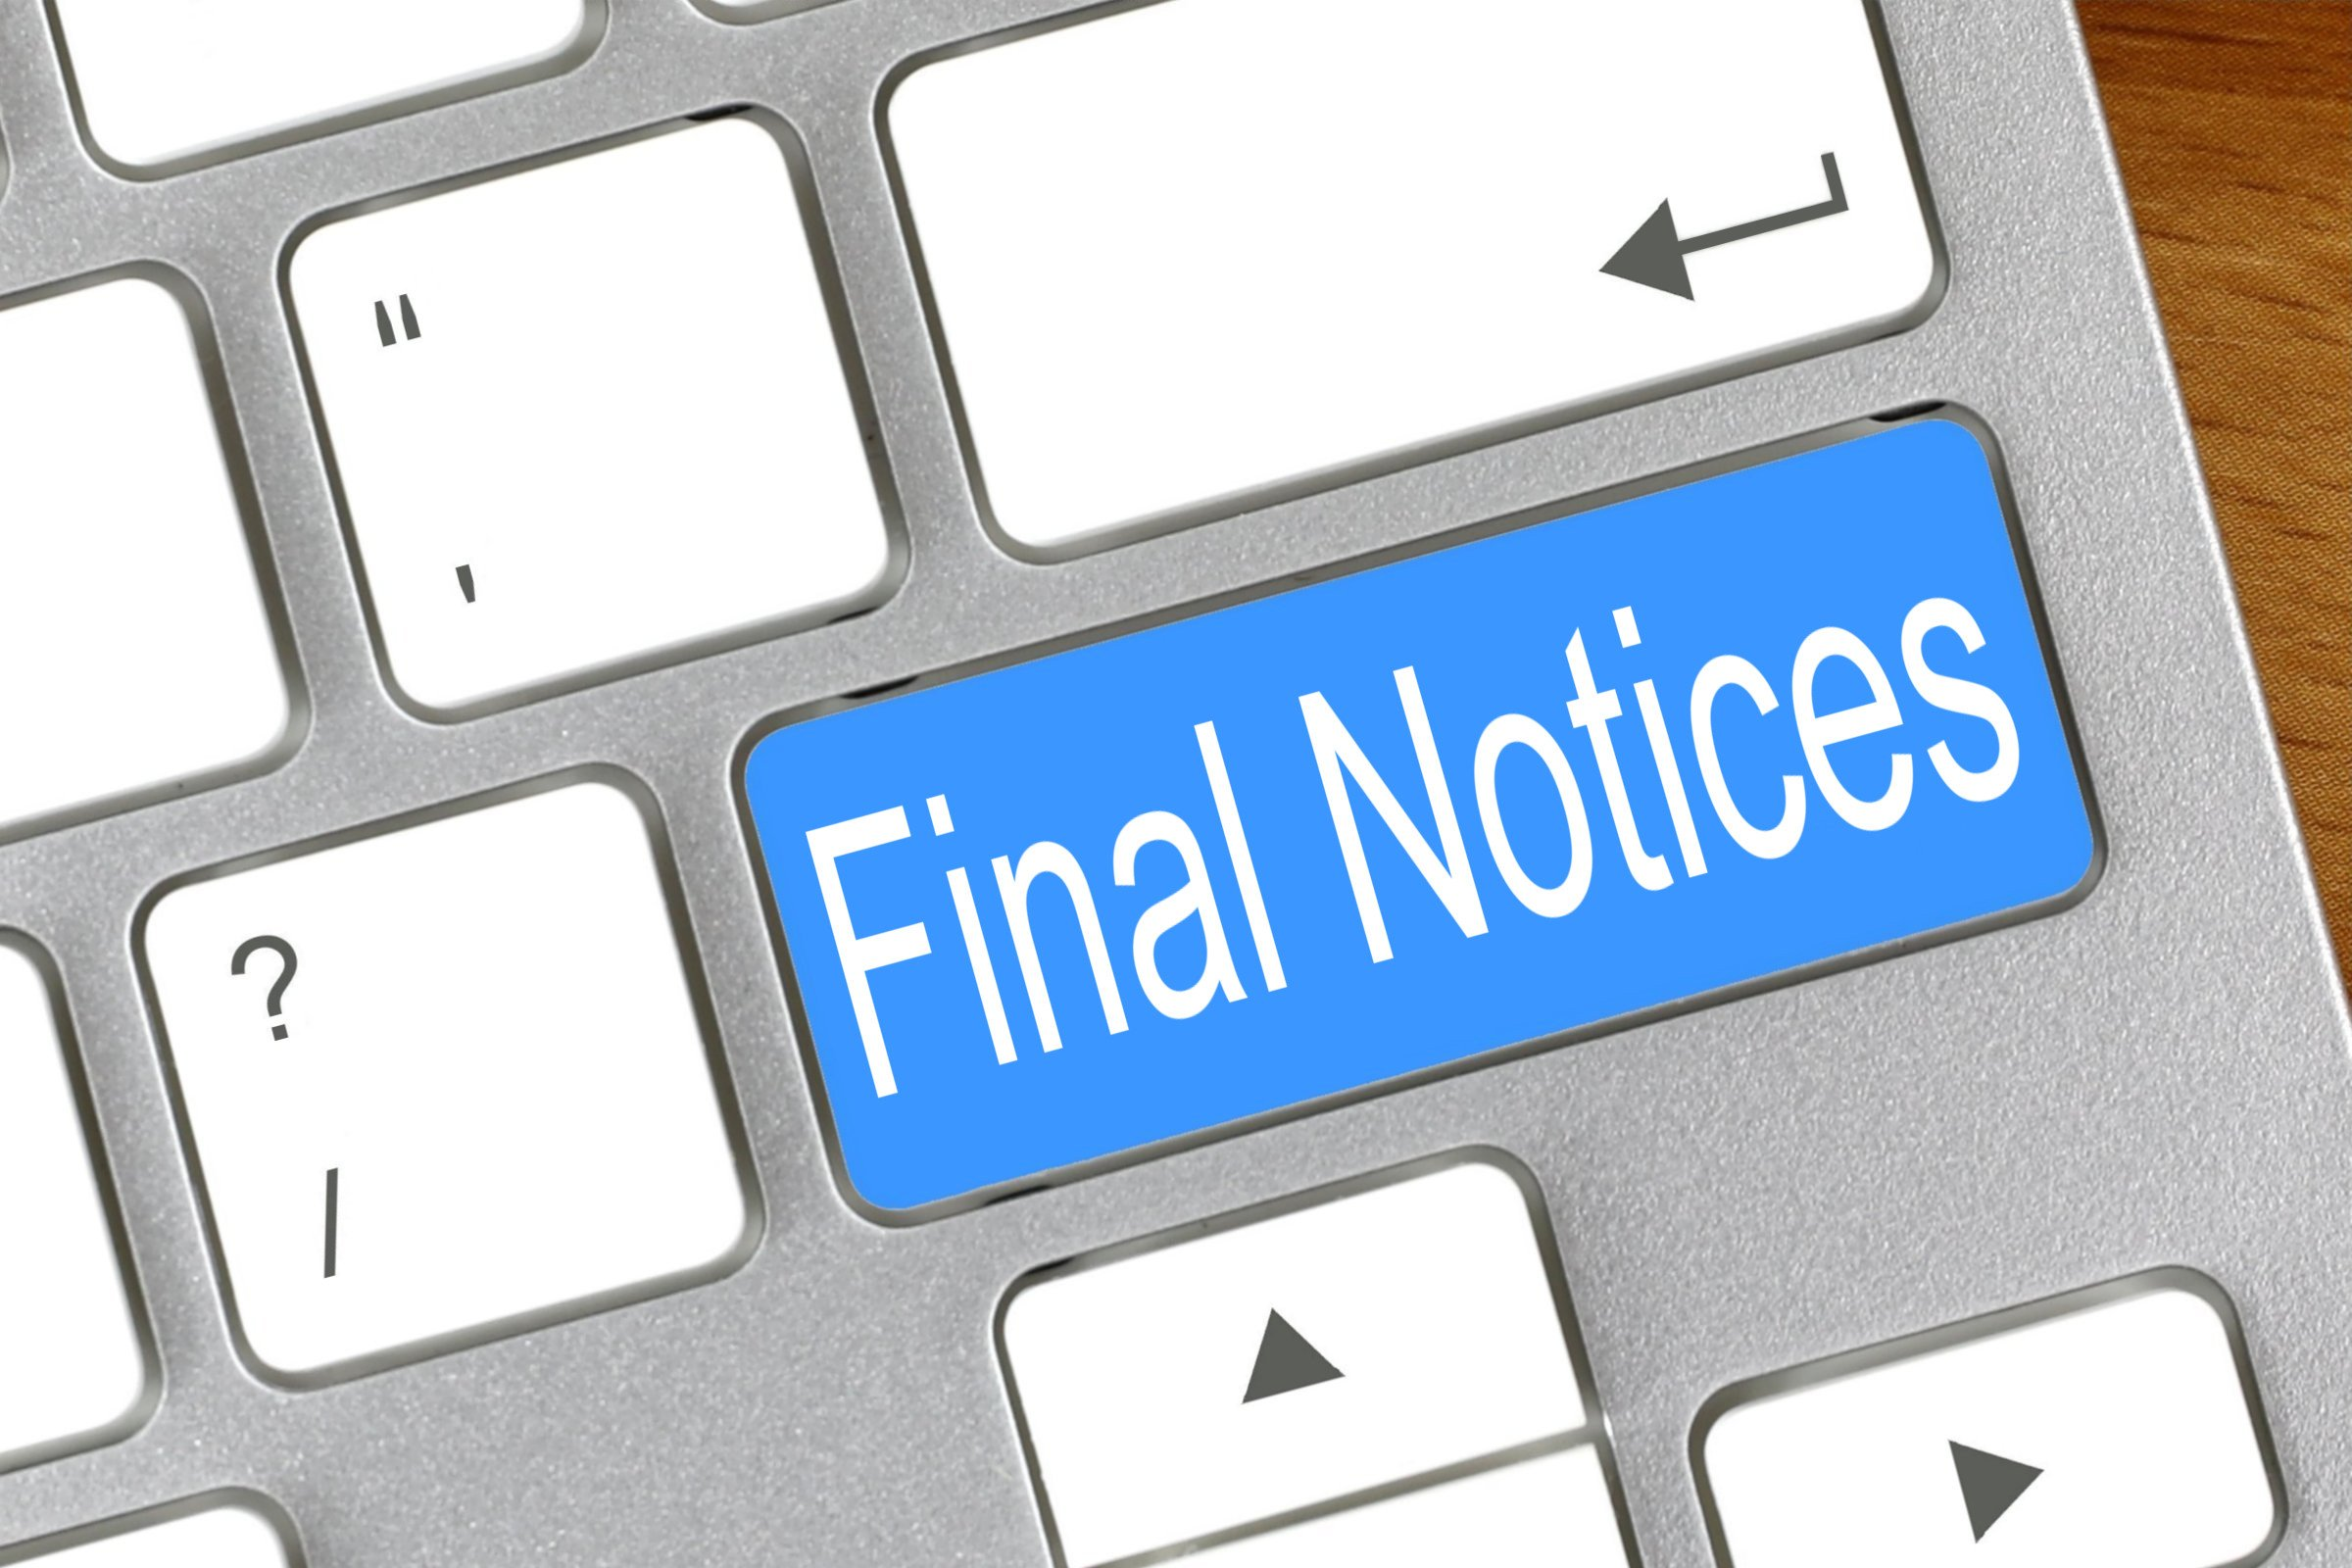 Final Notices